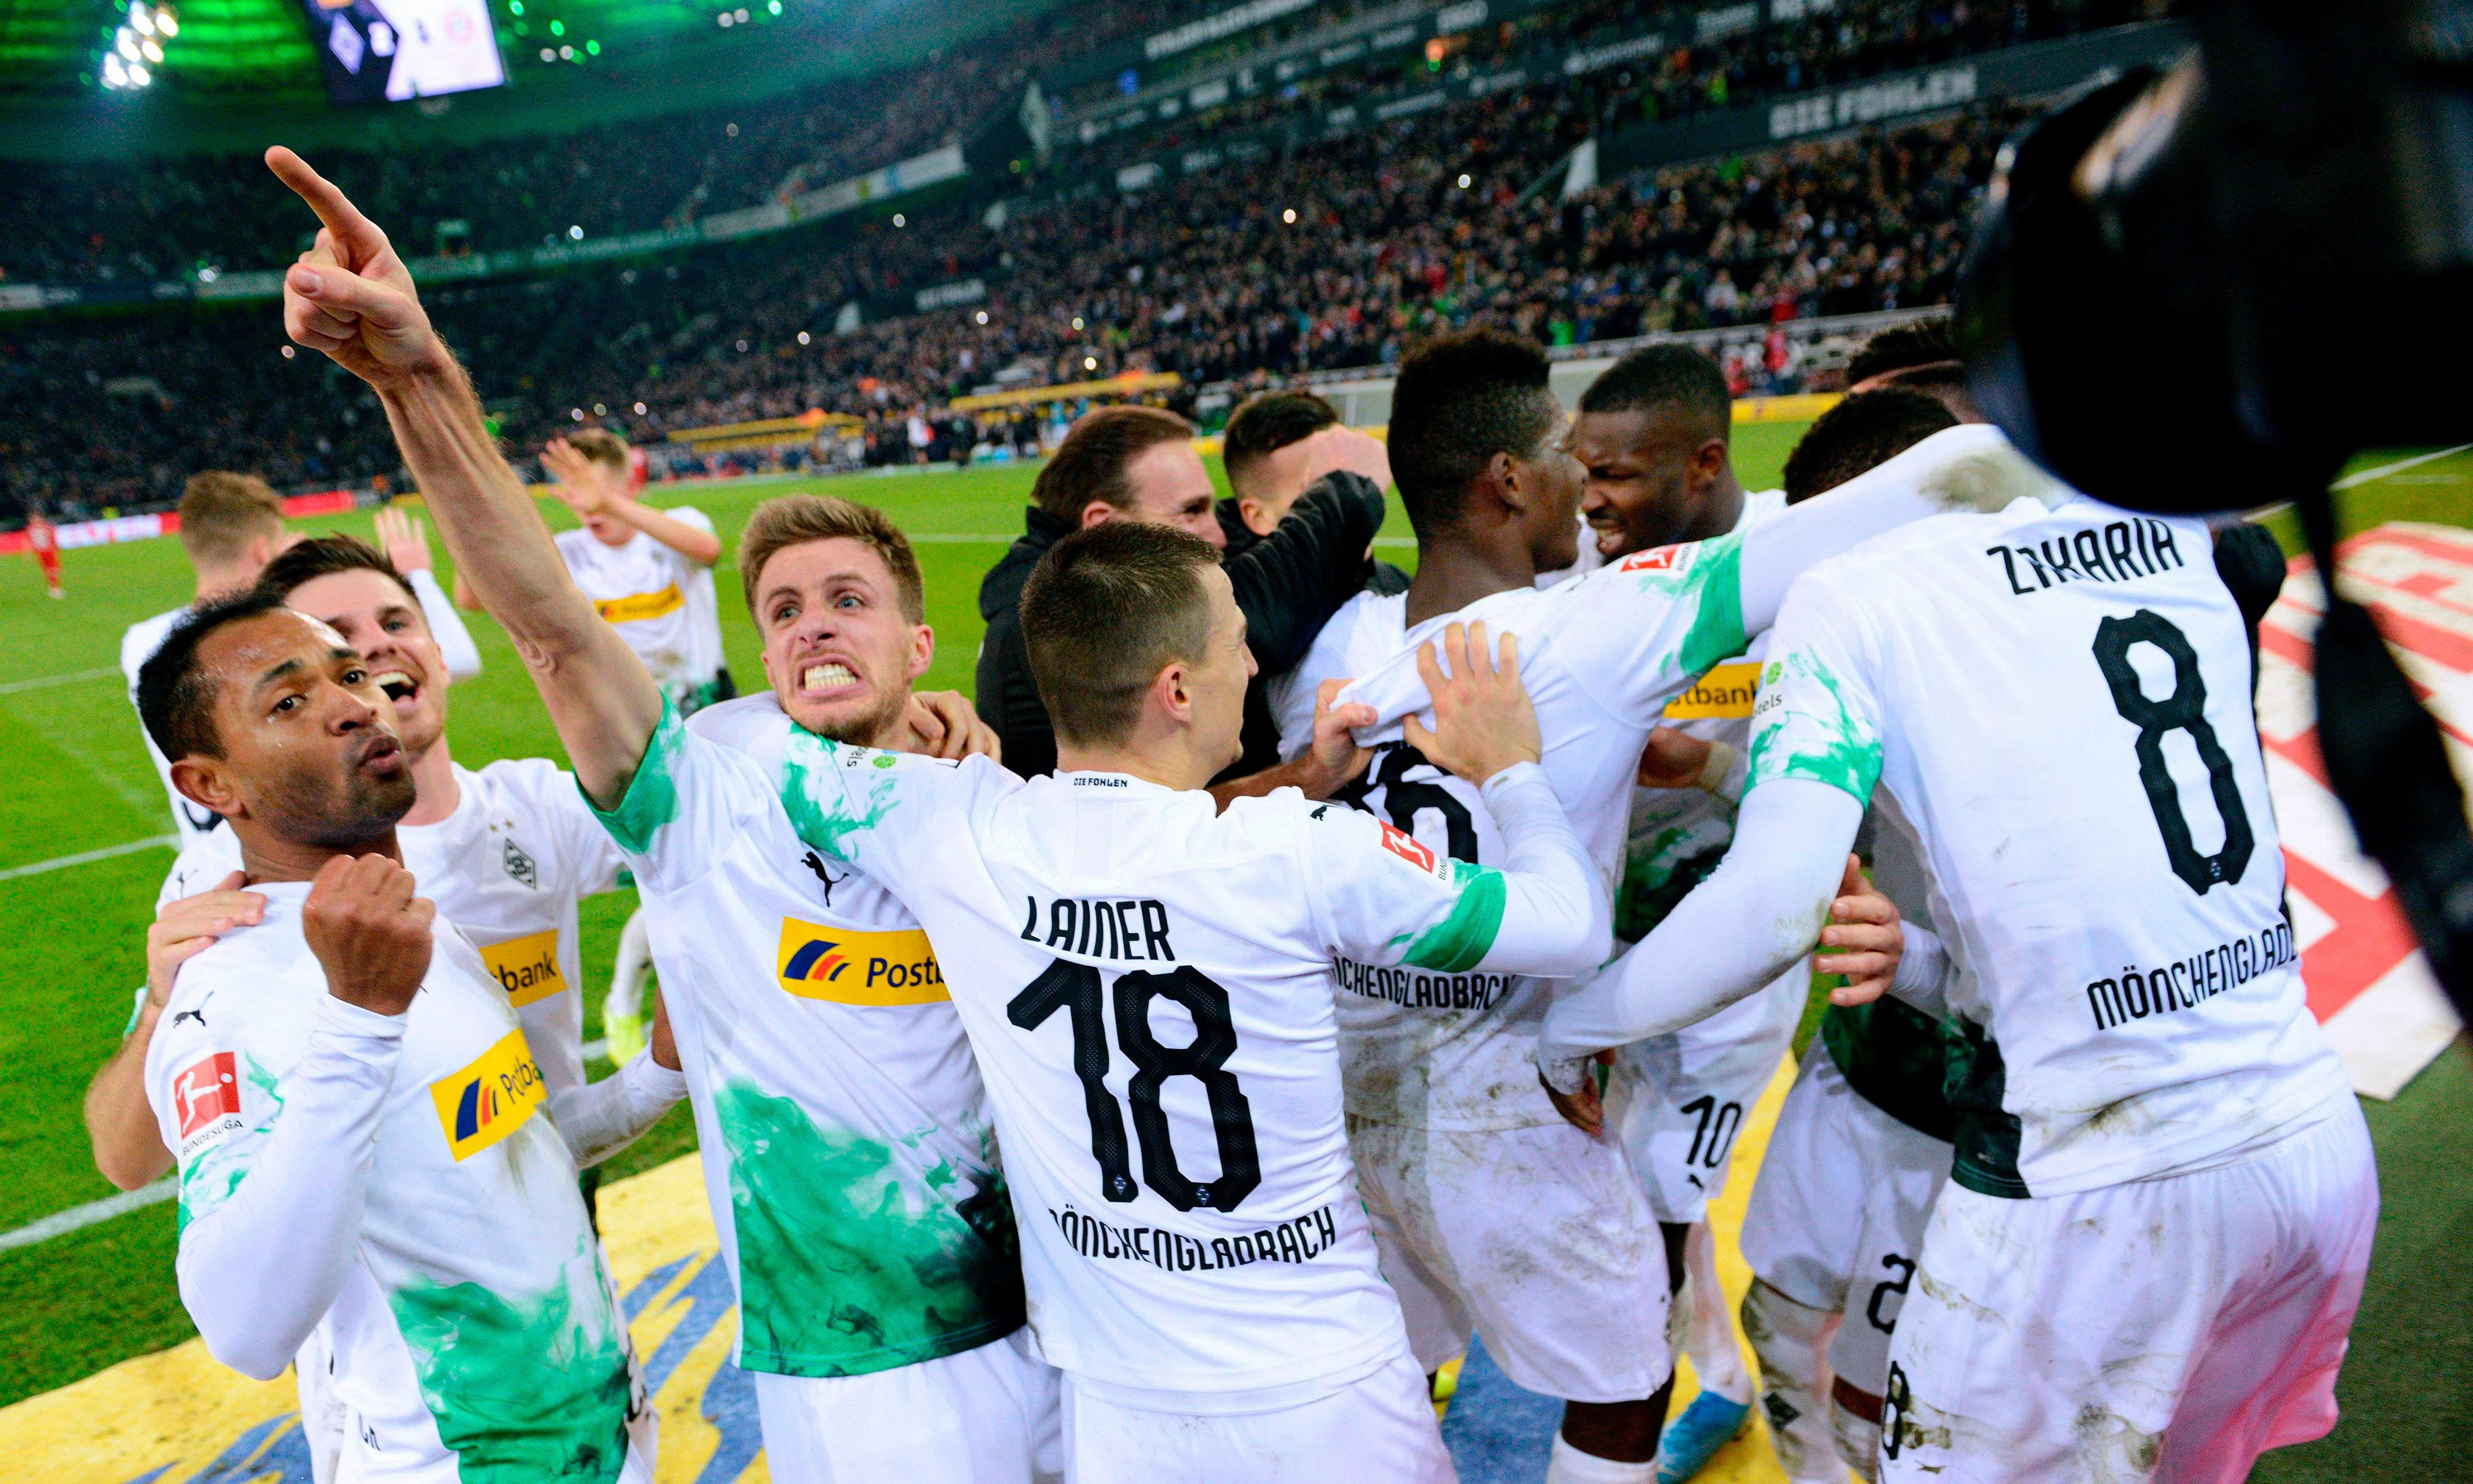 Gladbach dare to believe after stirring win over Bayern in 'real Klassiker'